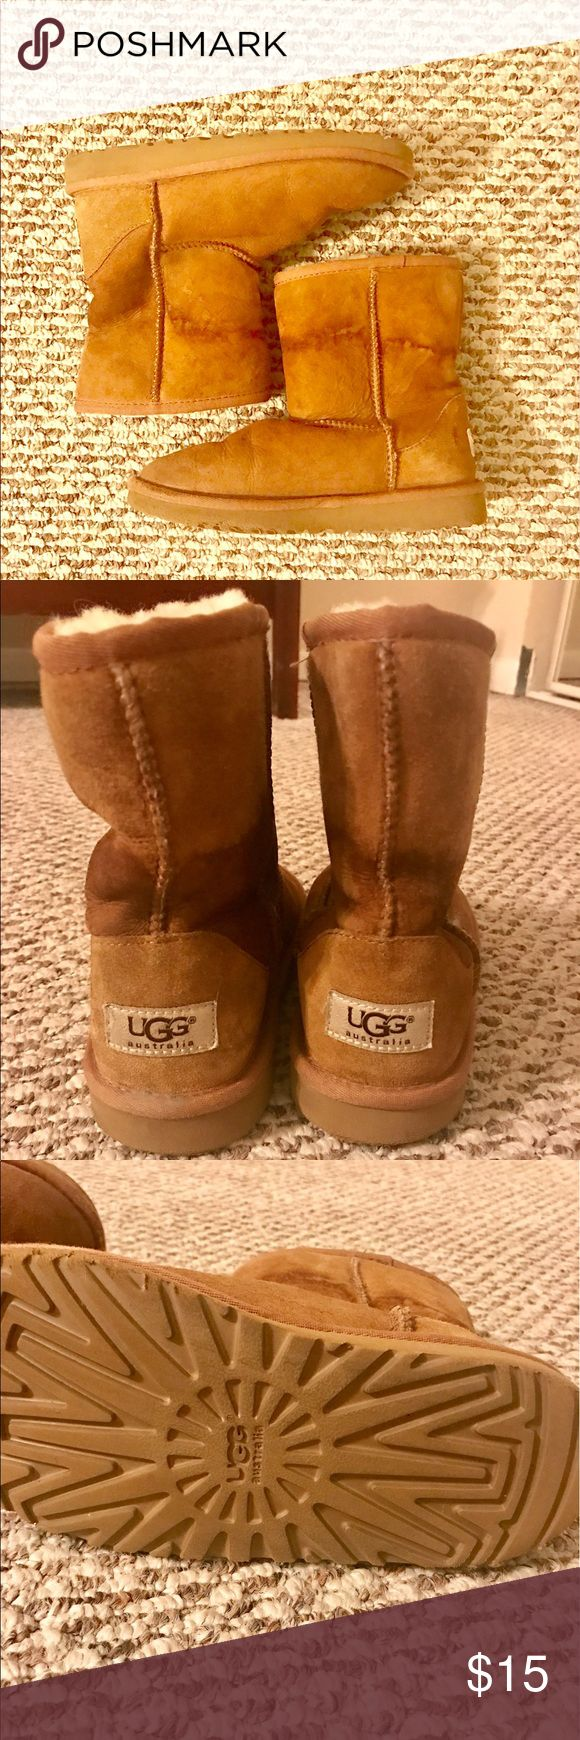 Uggs Classic for kids, size 2 Worn only twice. Stained with water, which is easily removable with suede brush and cream. Supersoft inside, feel like new. Incredible price. Act now, because I'm donating them next week. UGG Shoes Boots